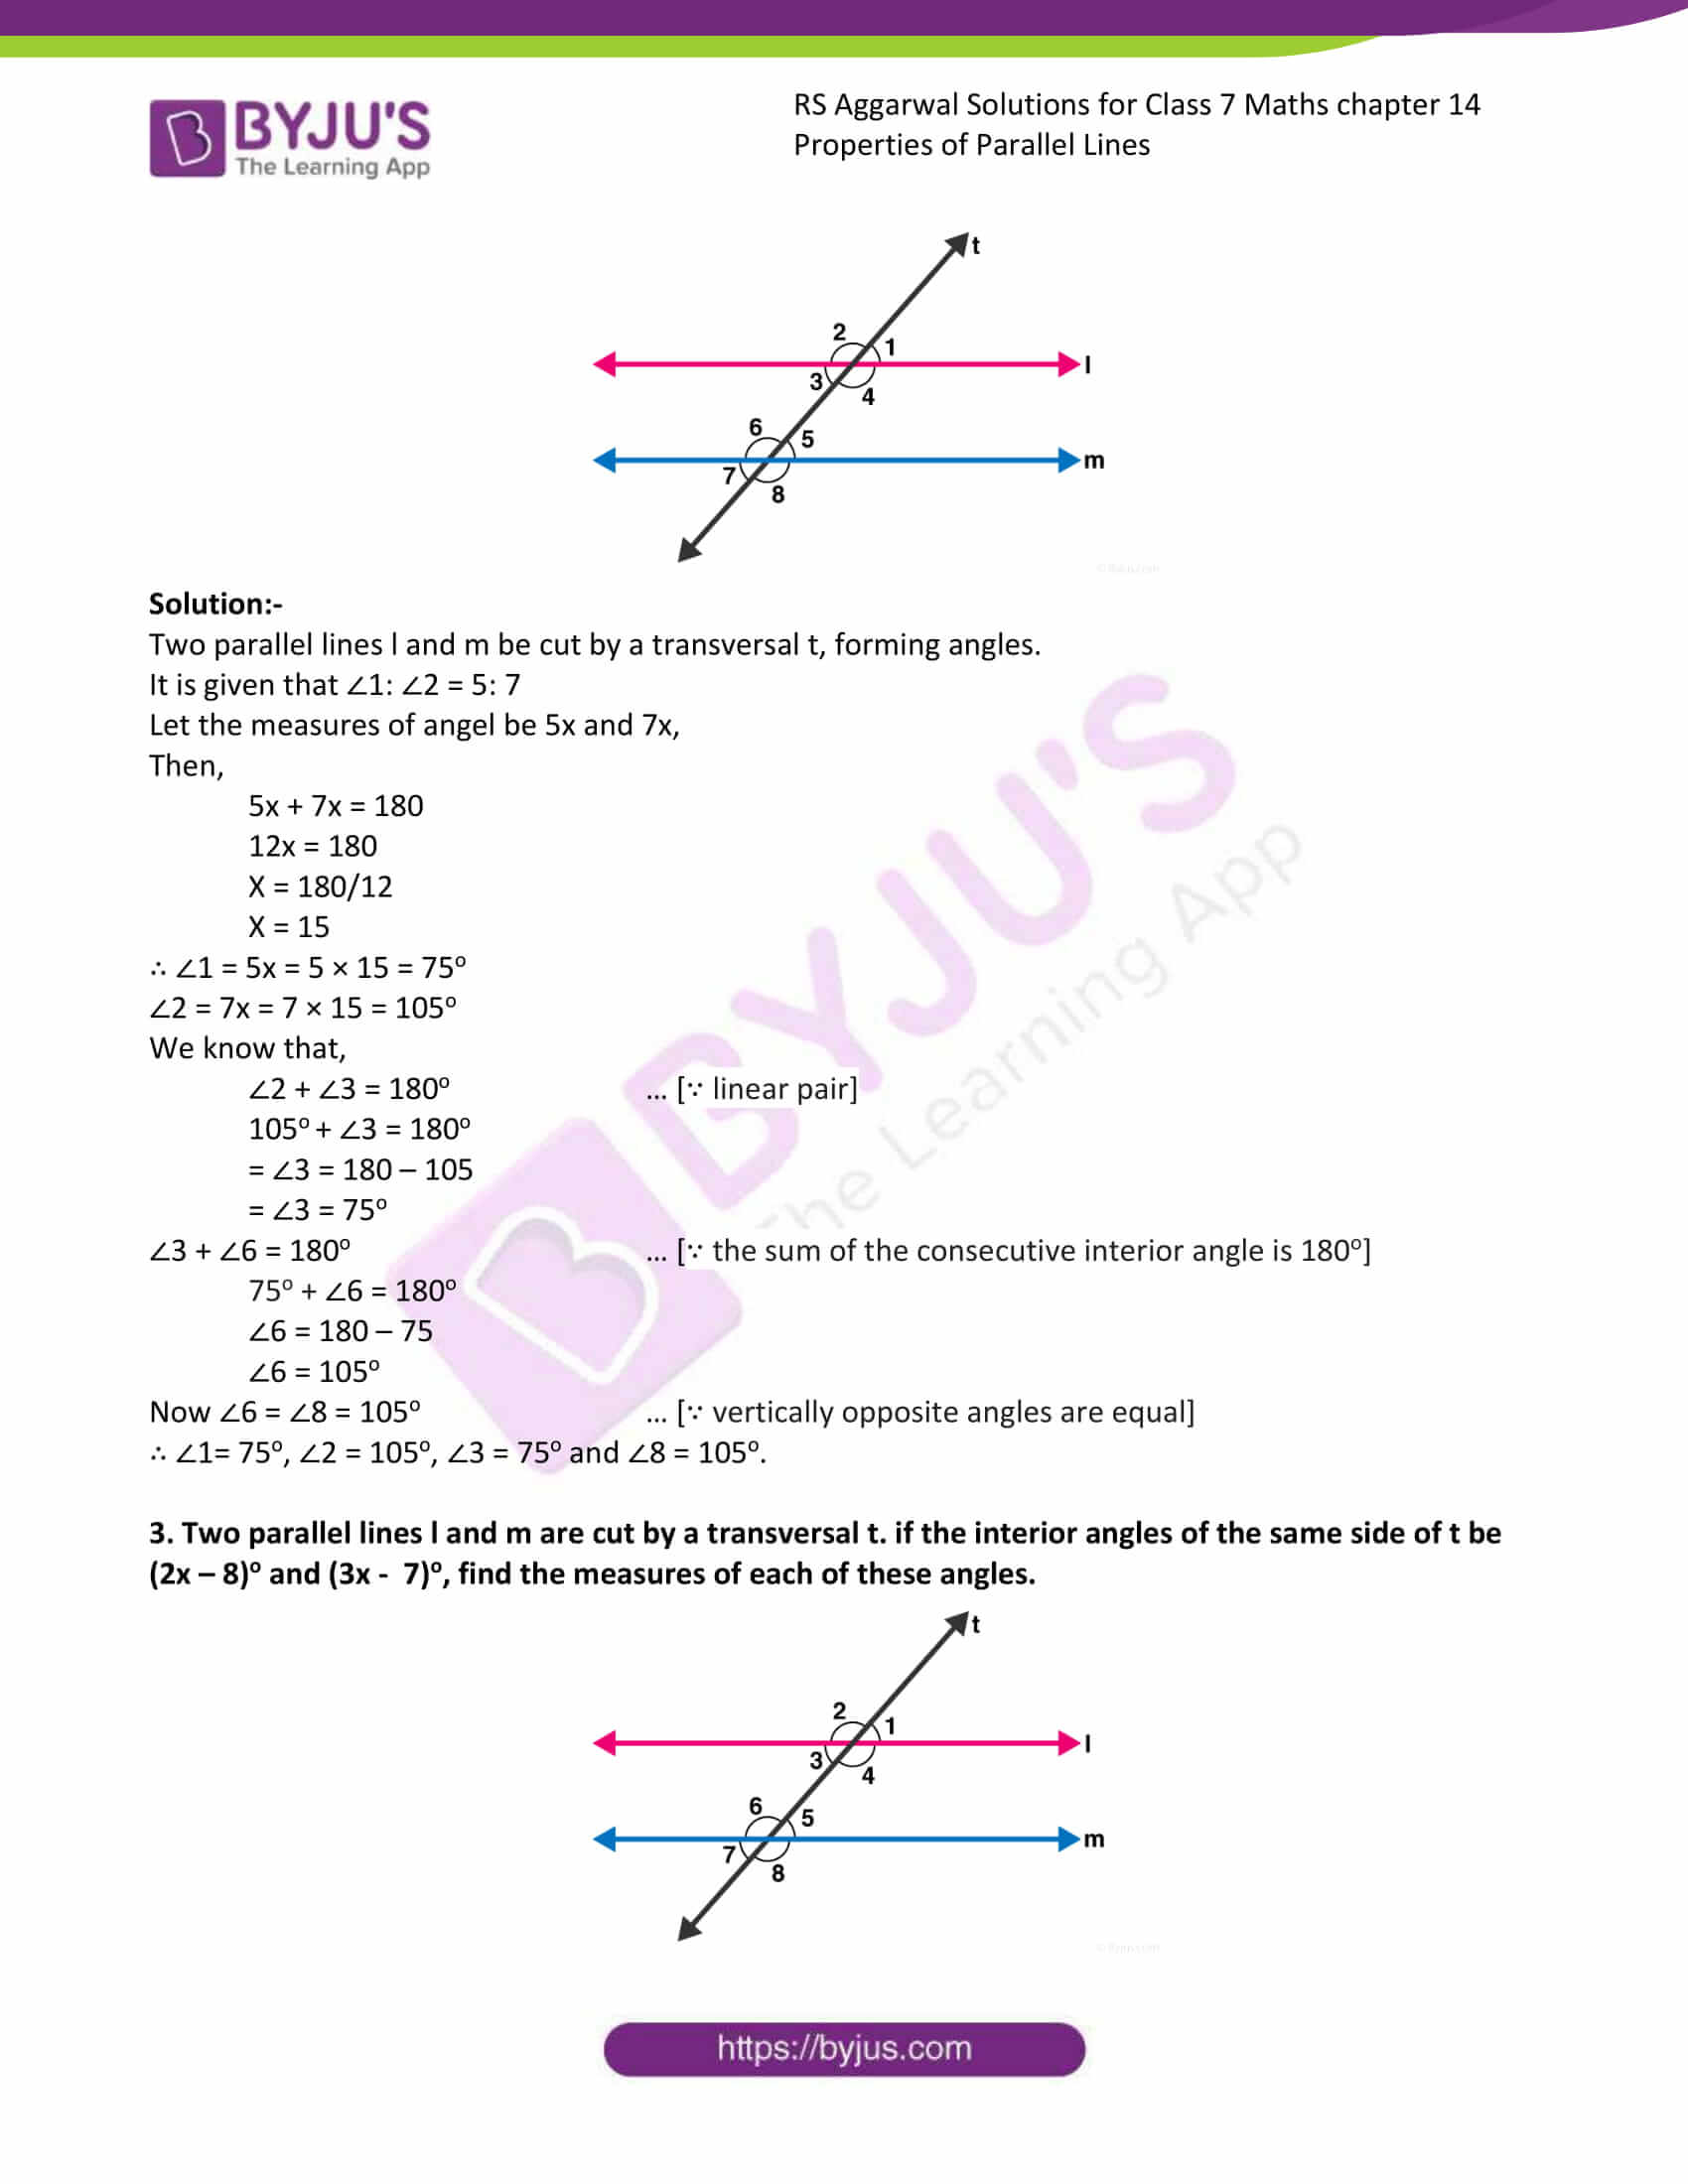 RS Aggarwal Solutions Class 7 Maths Chapter 14 Free Solutions 2